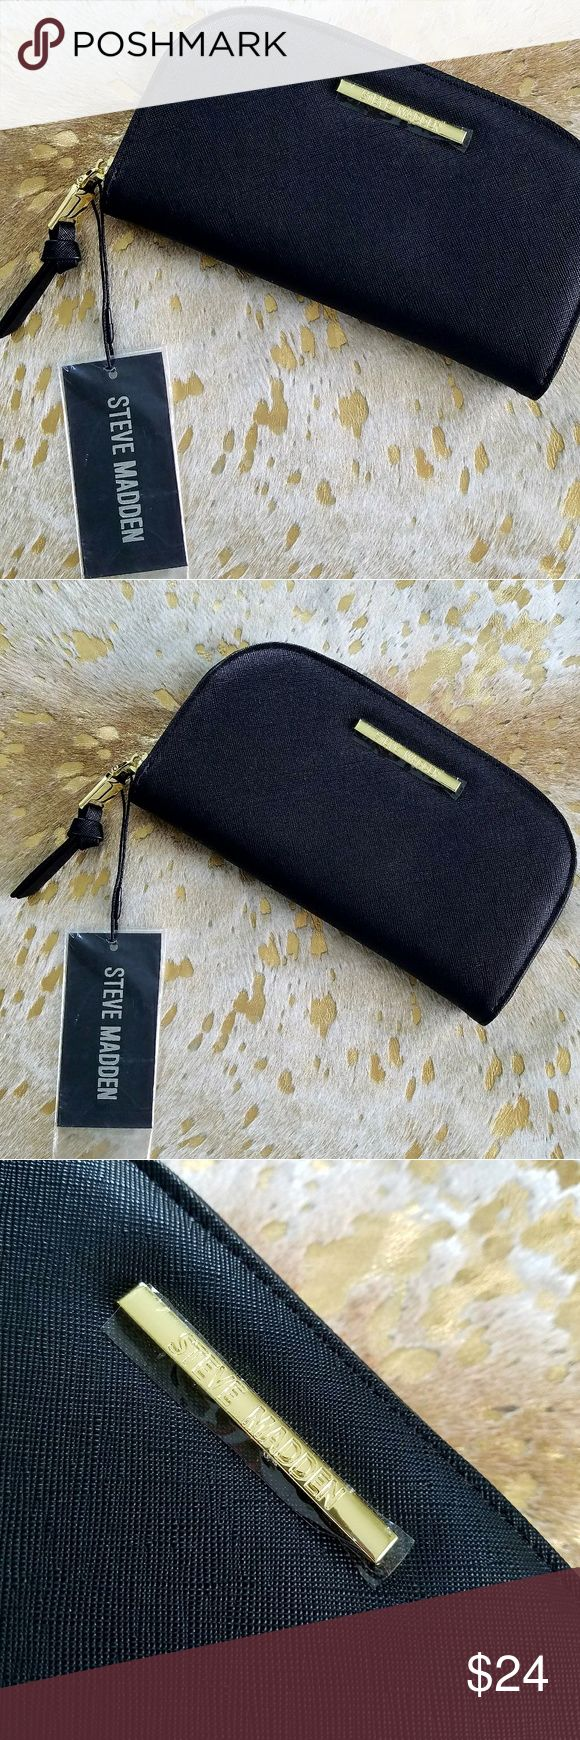 NWT Steve Madden Half Moon Zip Around Wallet New With Tags! Black with Gold Hardware 8 Credit Cards Slots 2 Bill Slots Zip Center Compartment Steve Madden Bags Wallets